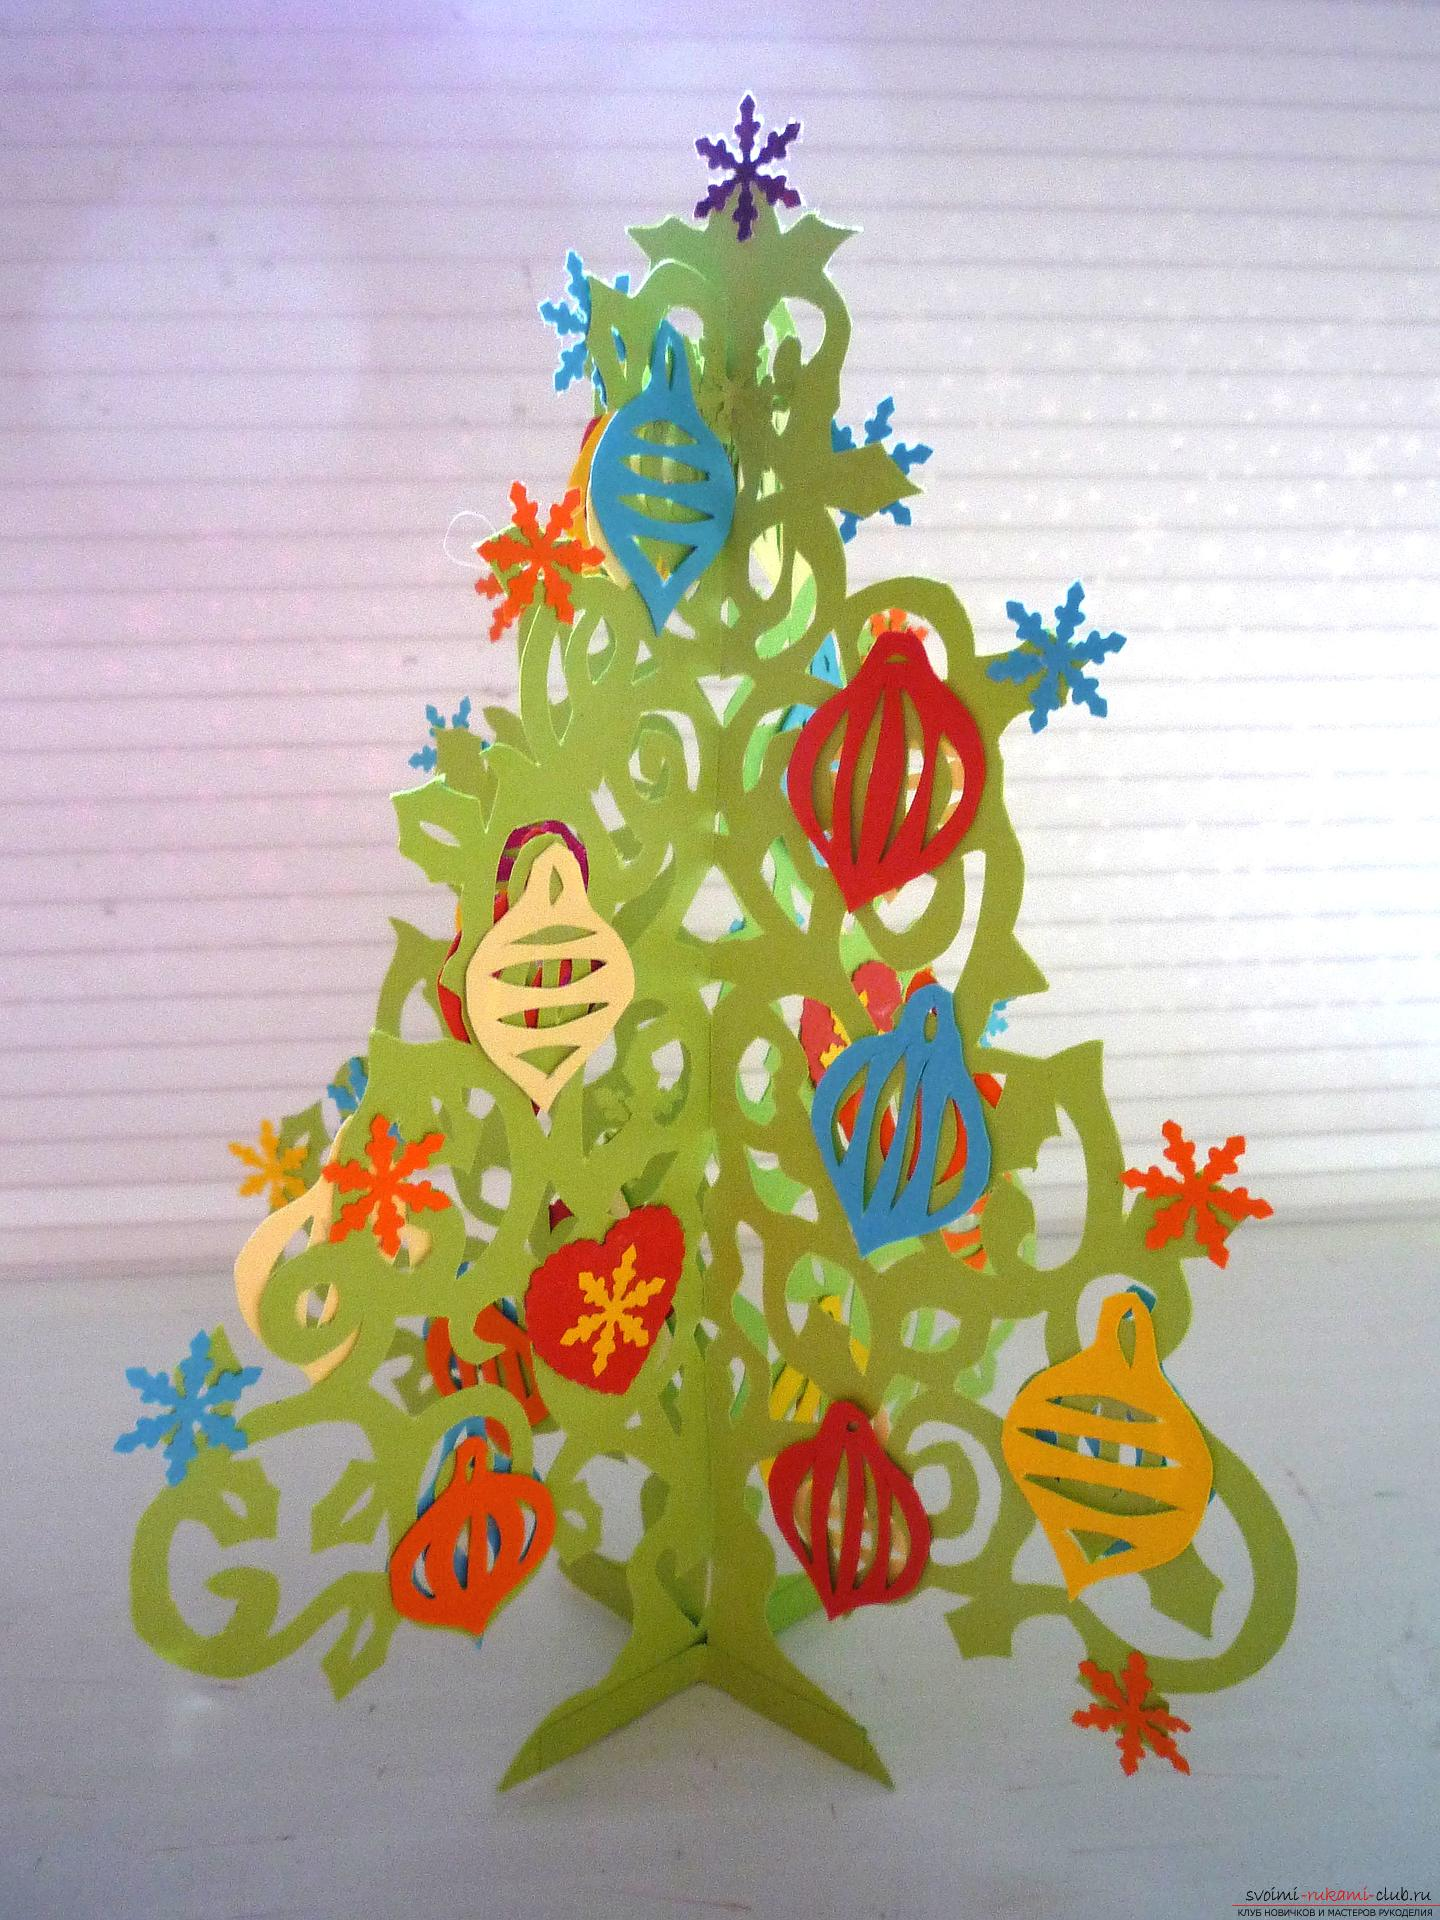 The master class will teach you how to make your own hands a New Year's 3D Christmas tree made of paper. Photo №8